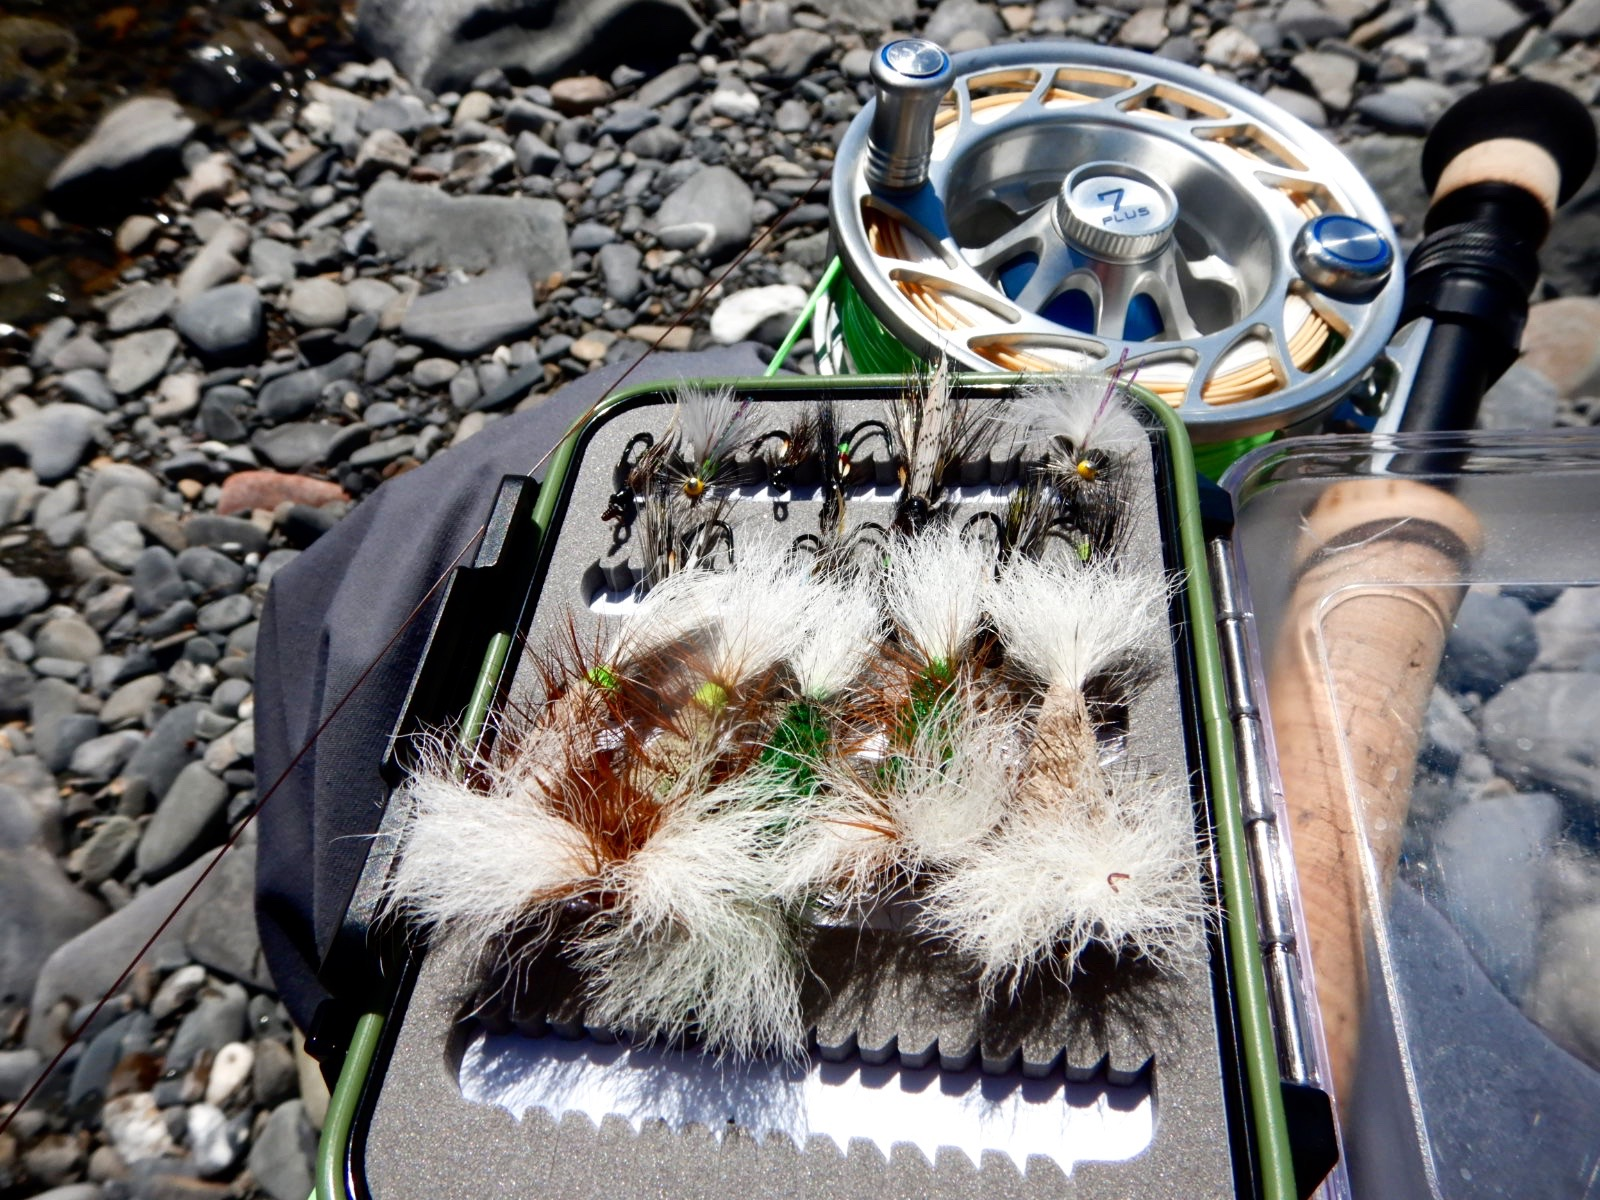 Dry fly's were certainly on the menu this week!